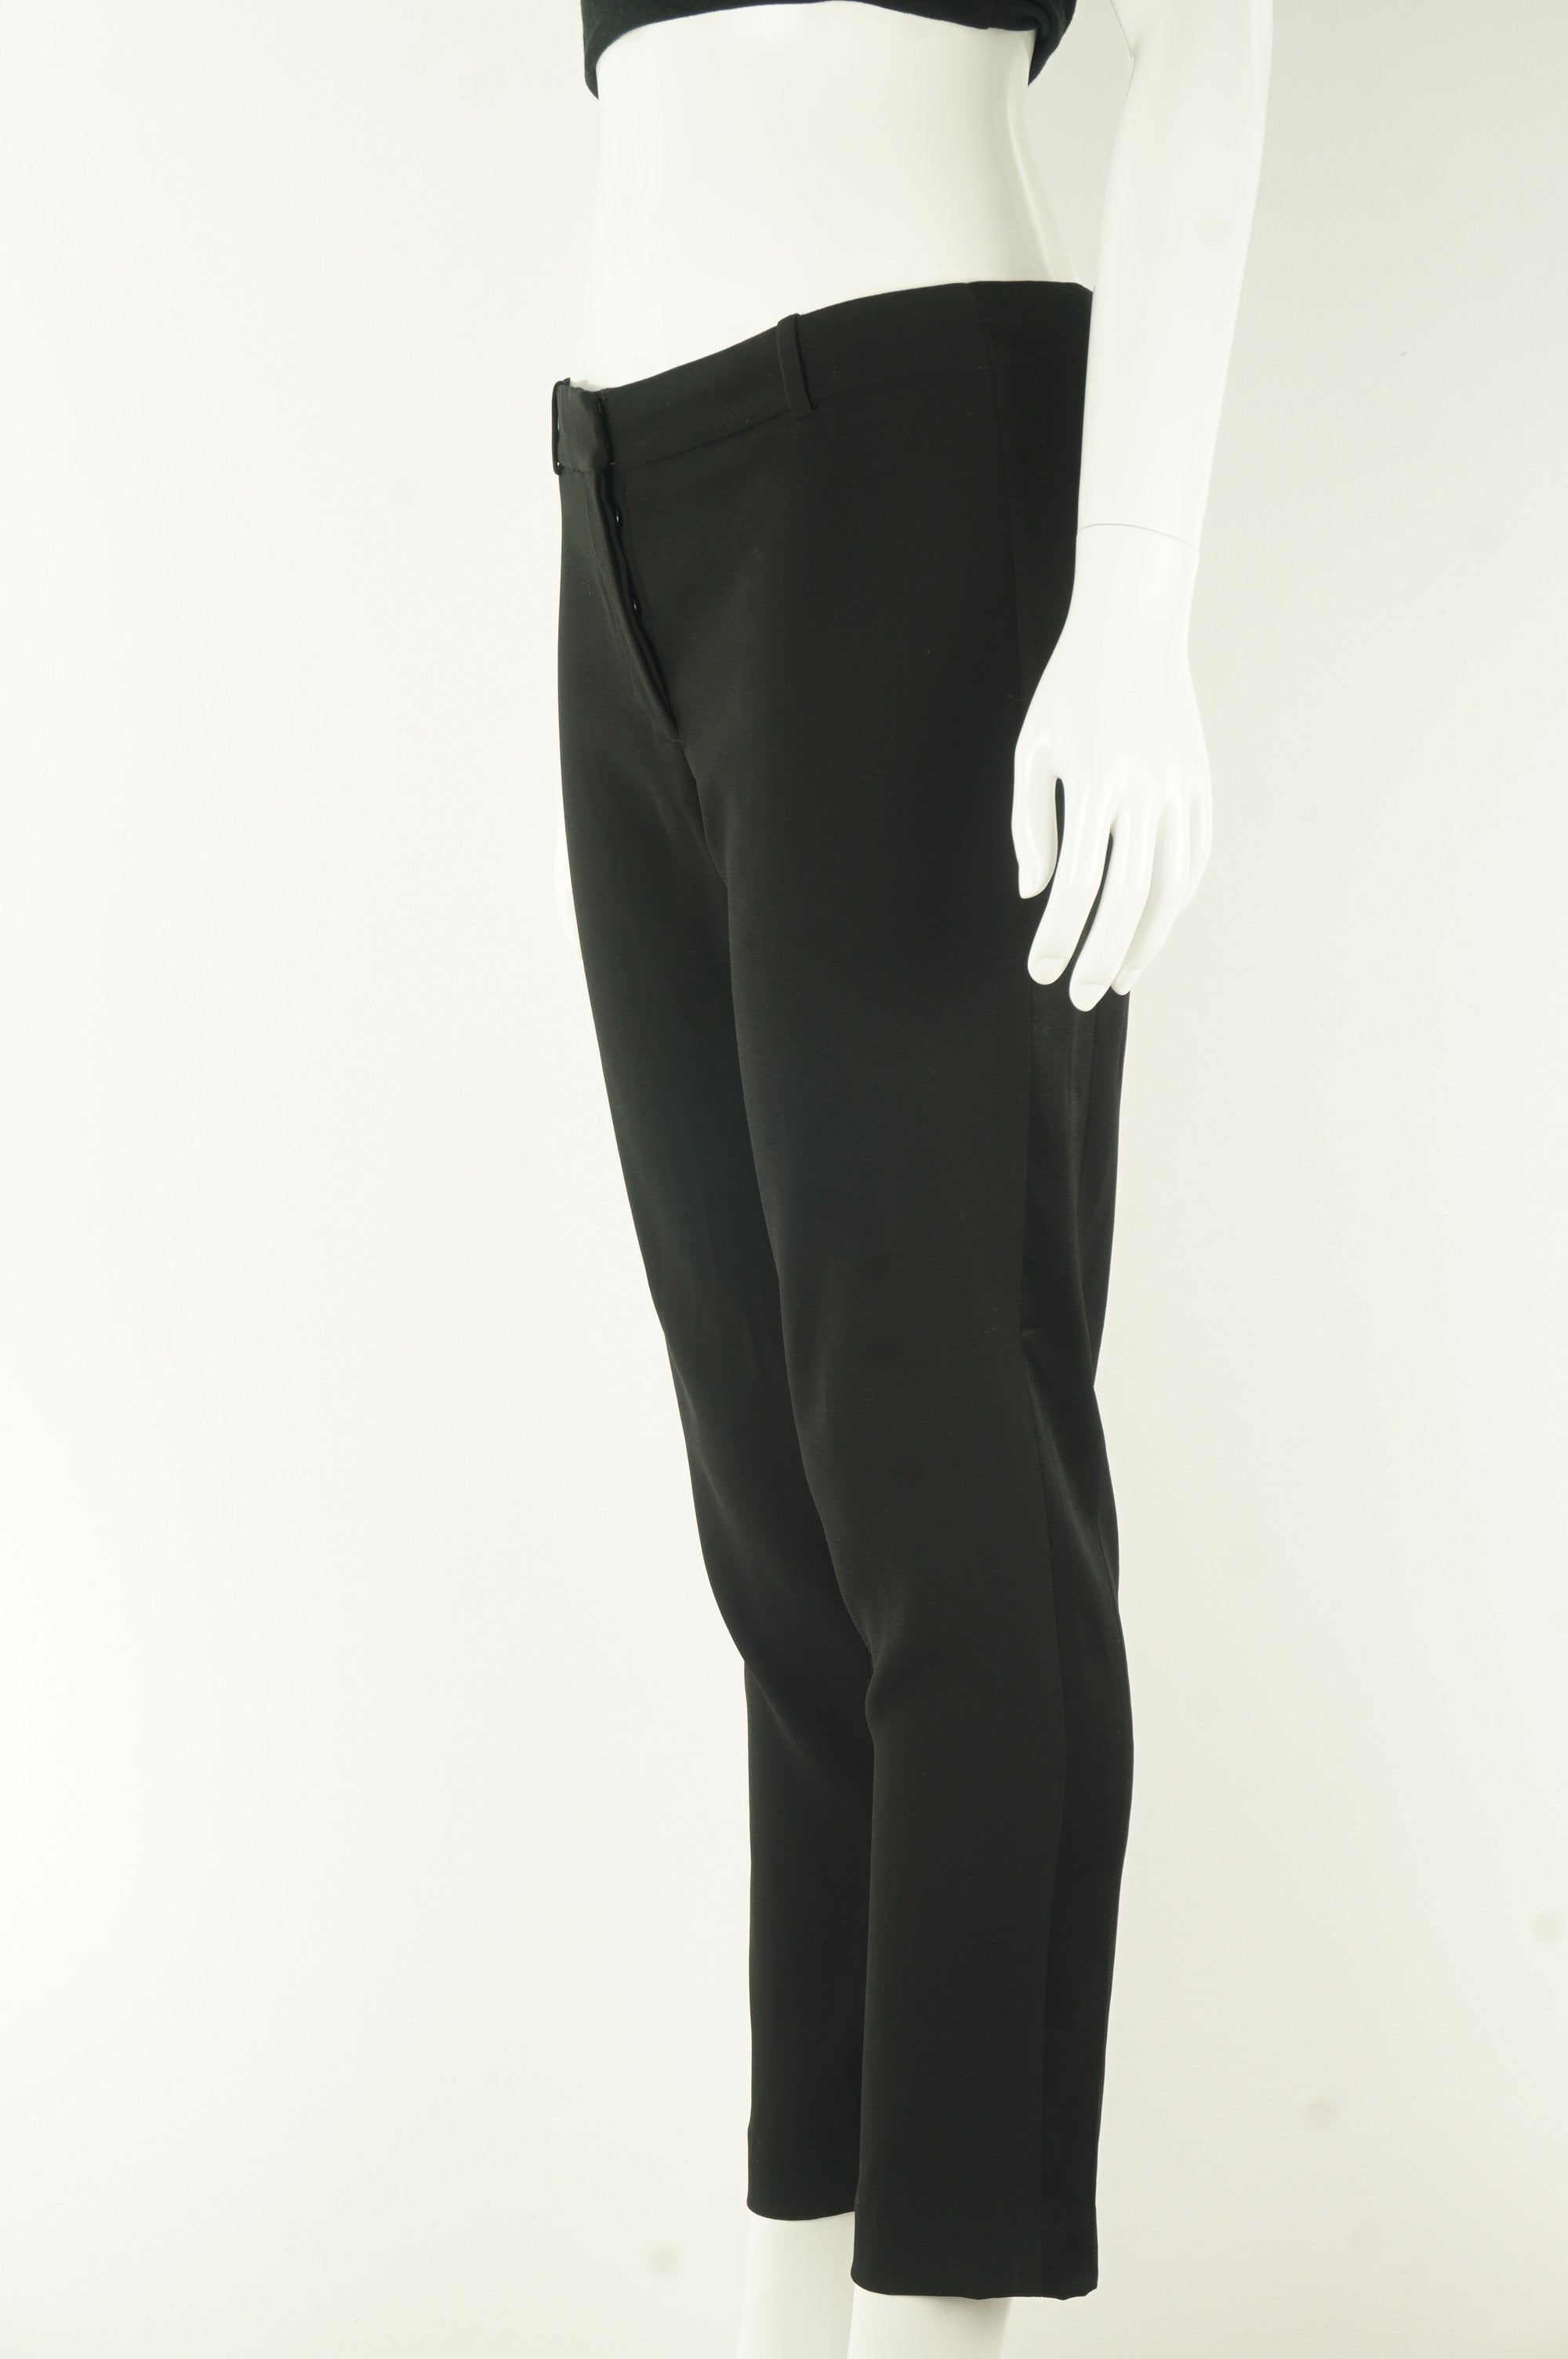 Wilfred Dress Pants with Stretchy Sides, A pair of dress pants that allow you to move freely and sit comfortably? Look no further!, Black, 82% triacetate, 18% polyester, women's Pants, women's Black Pants, Wilfred women's Pants, Aritzia women's dress straight pants, women's comfortable office pants, women's comfortable office trousers